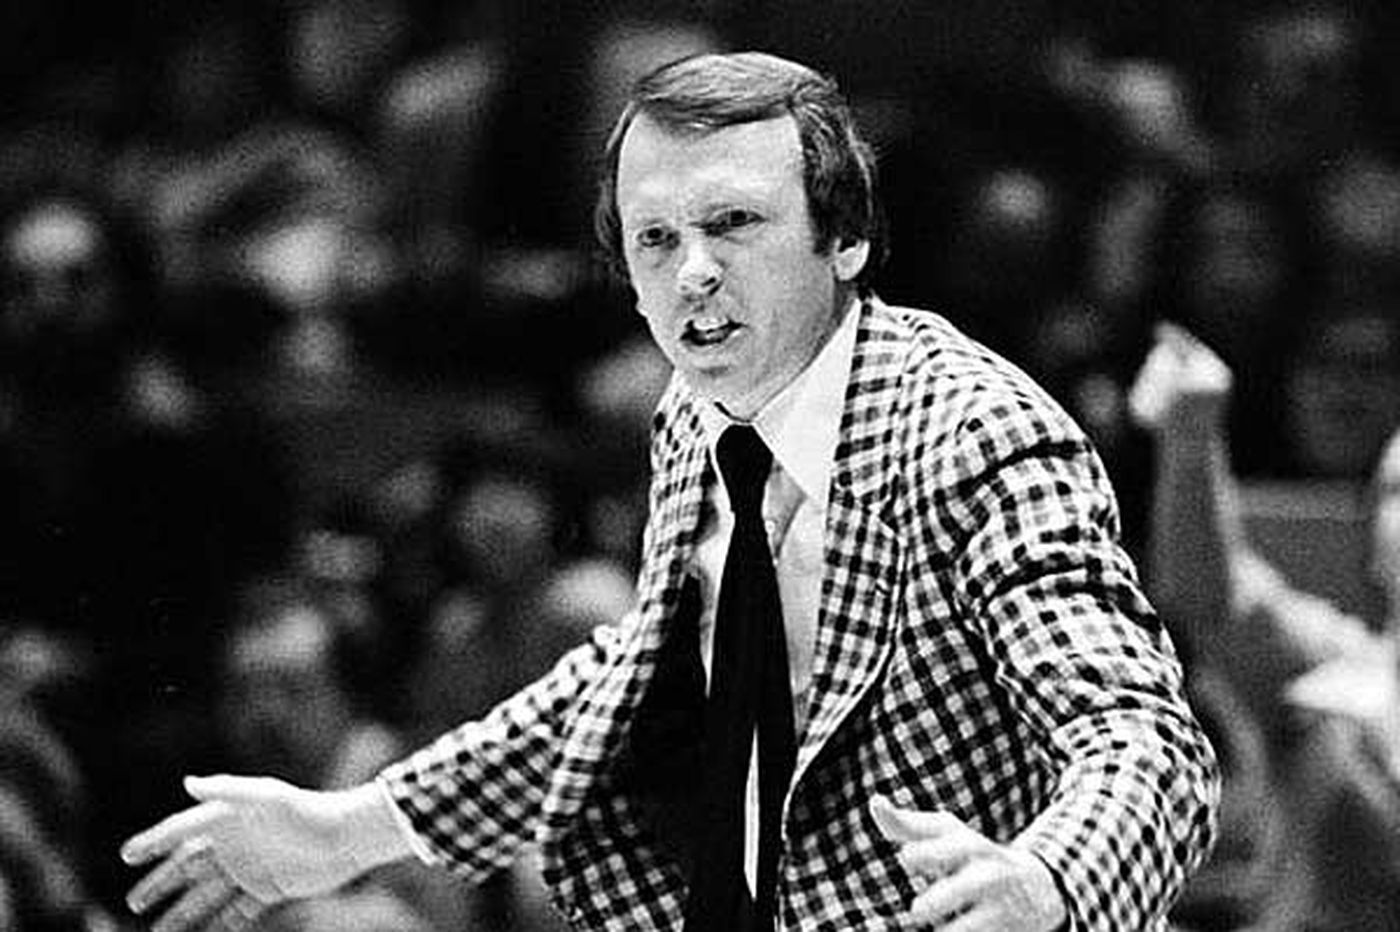 Hiring Billy Cunningham as head coach of the Sixers